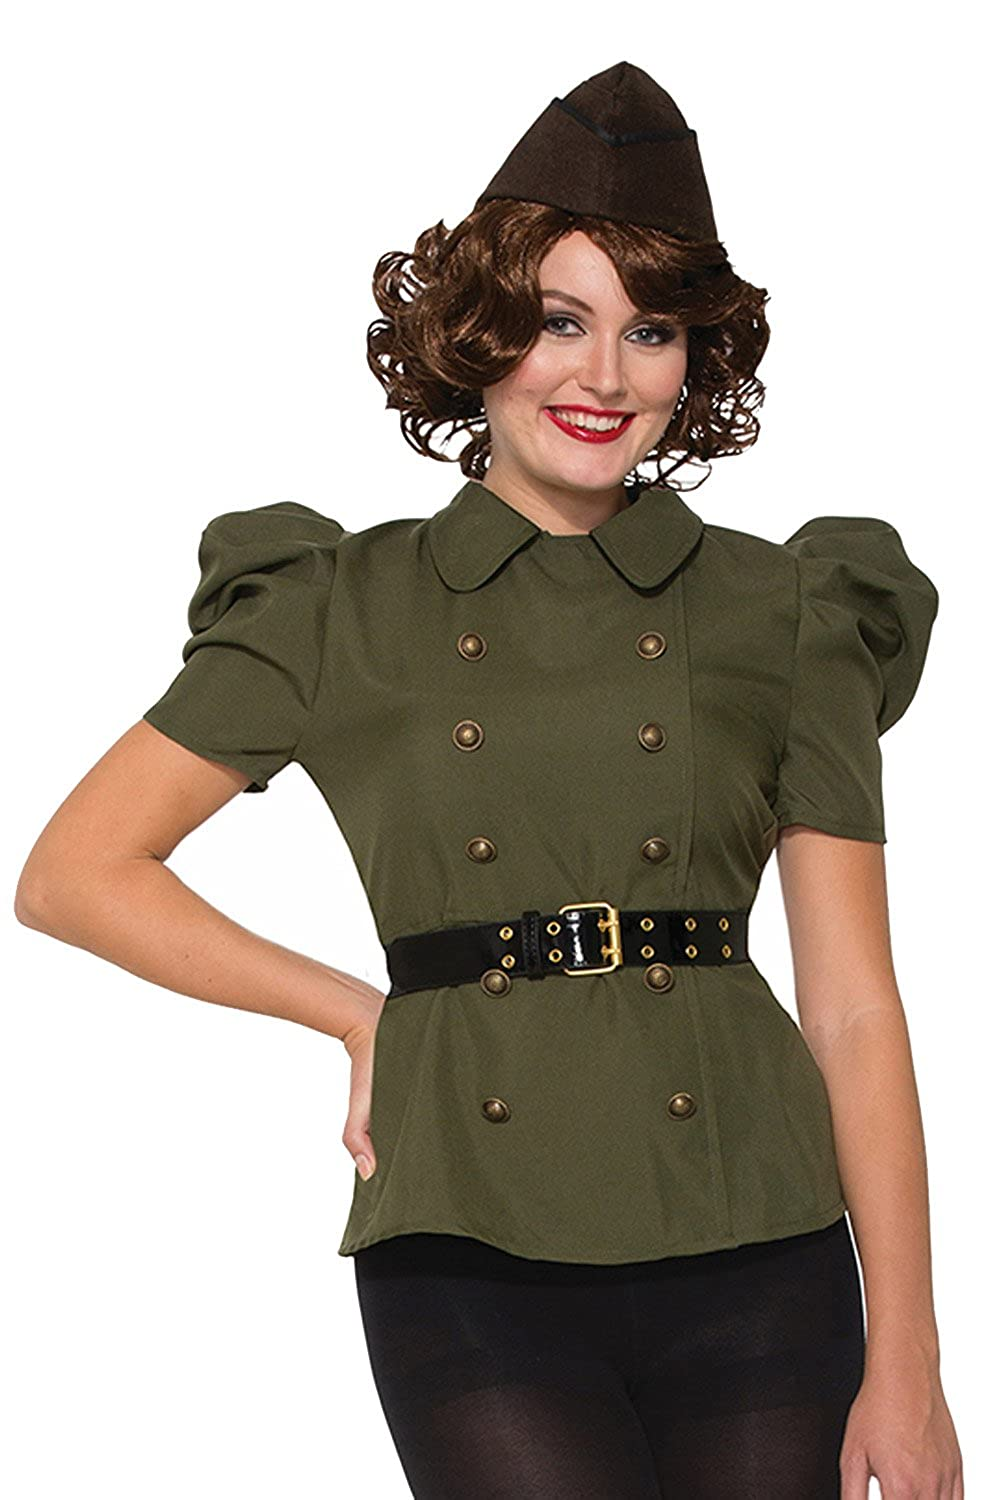 1940s Blouses, Shirts and Tops Fashion History Bombshells Adult Costume- $24.47 AT vintagedancer.com